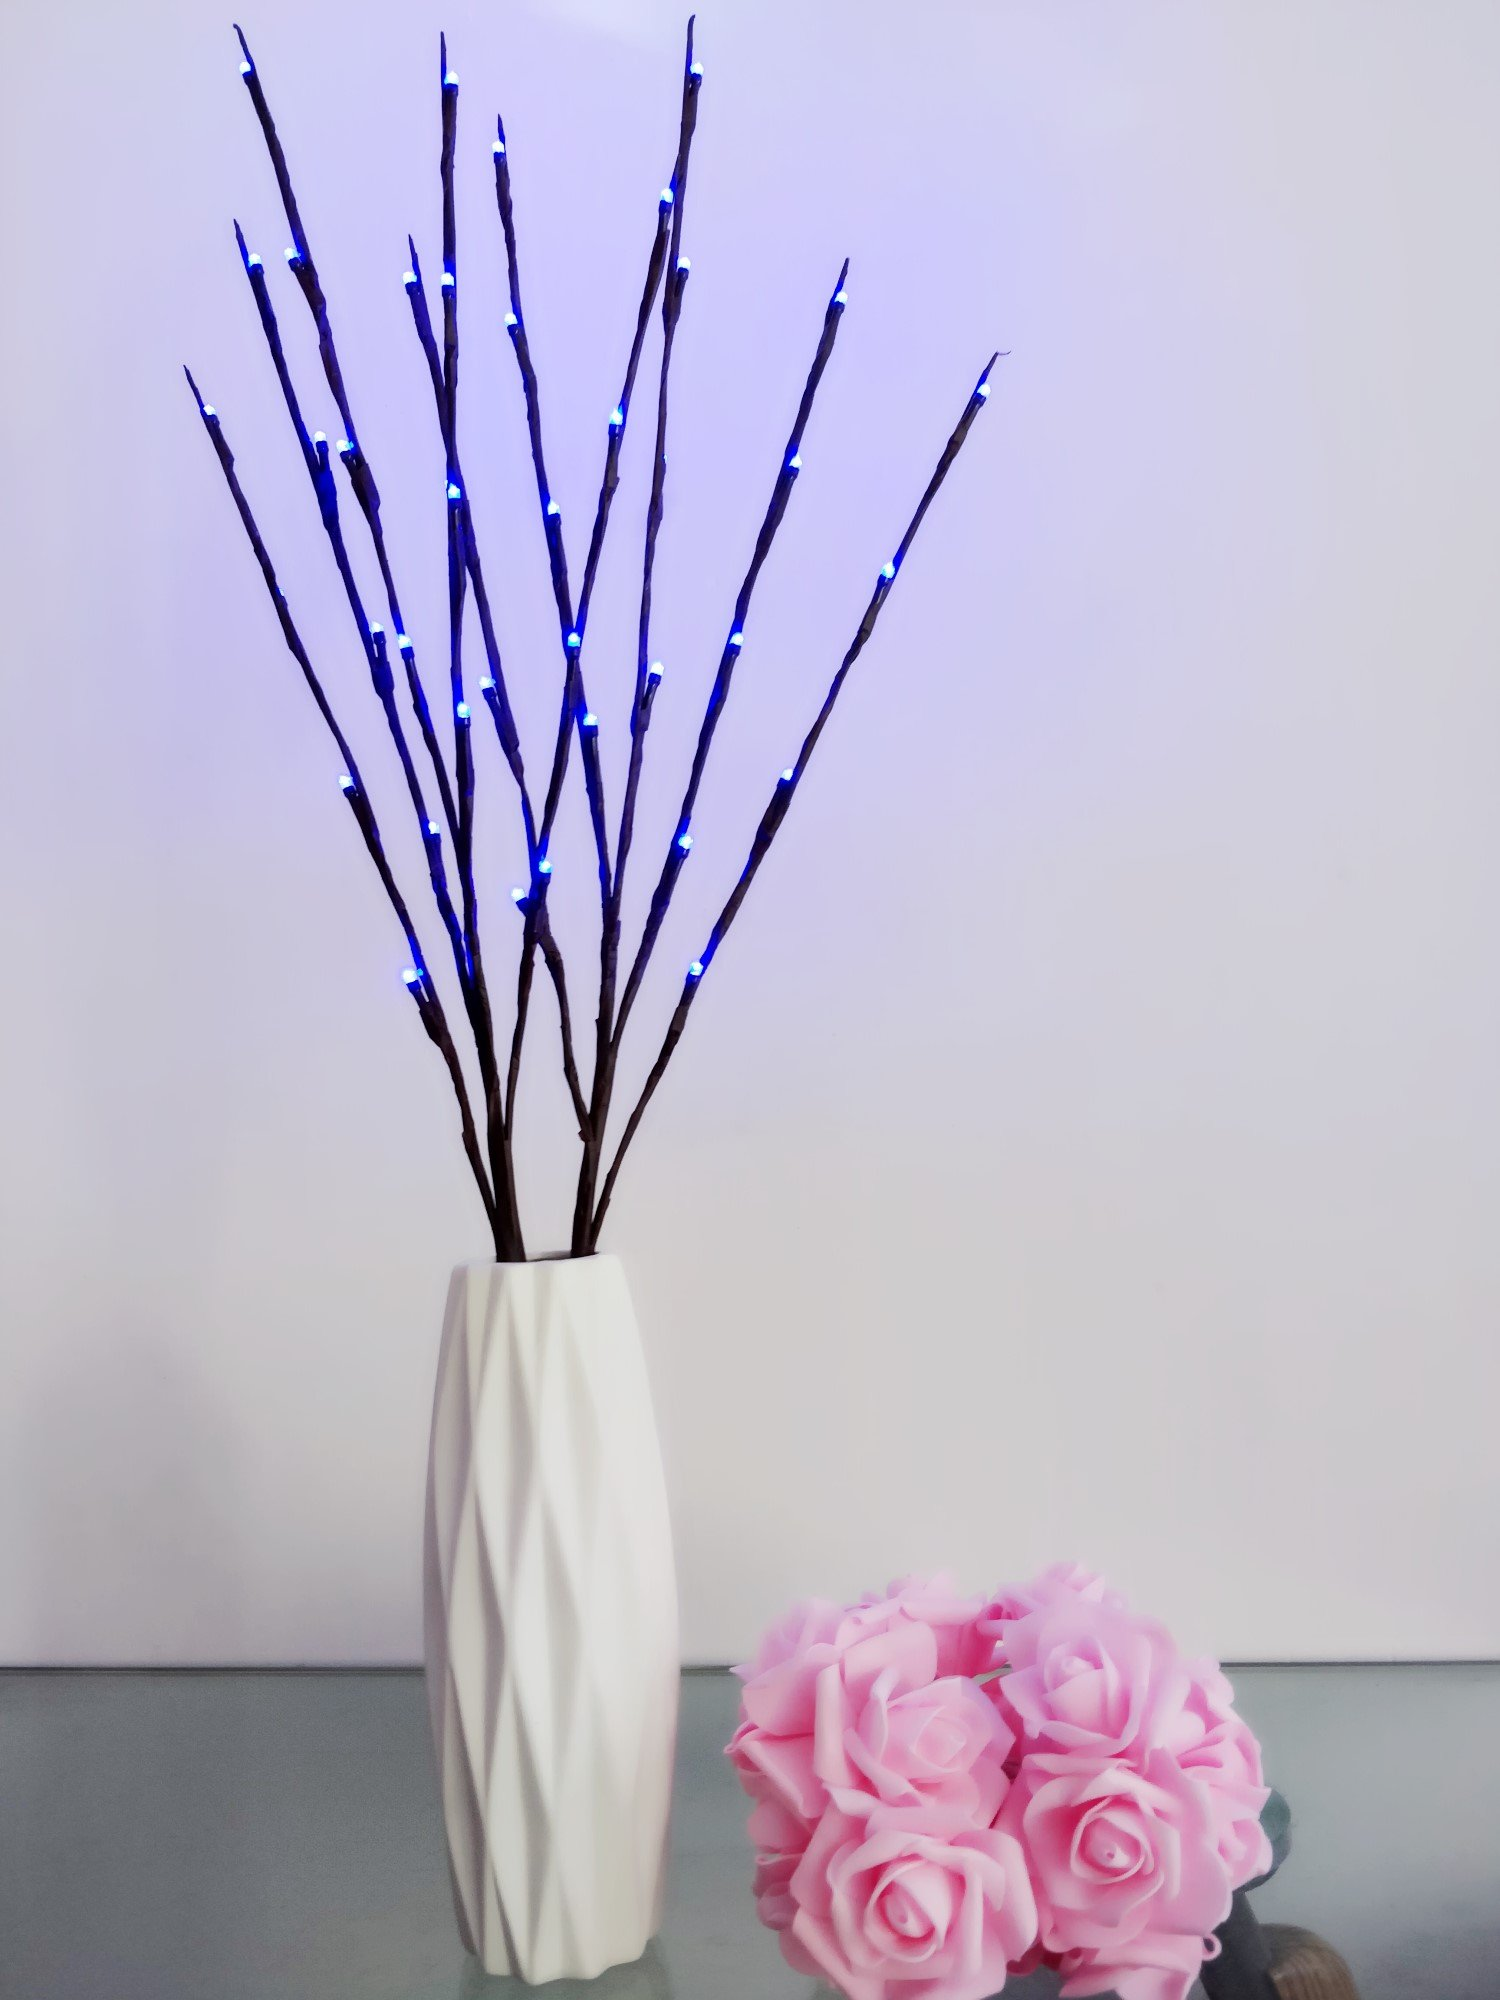 Fantasee 2 Pack 76cm Branch Twig Light LED Tree Branches Light Flexible Branch Decoration Light for Indoor Shop Windows Vase Table Living Room, 4 Colors available (2 Pack, Blue)